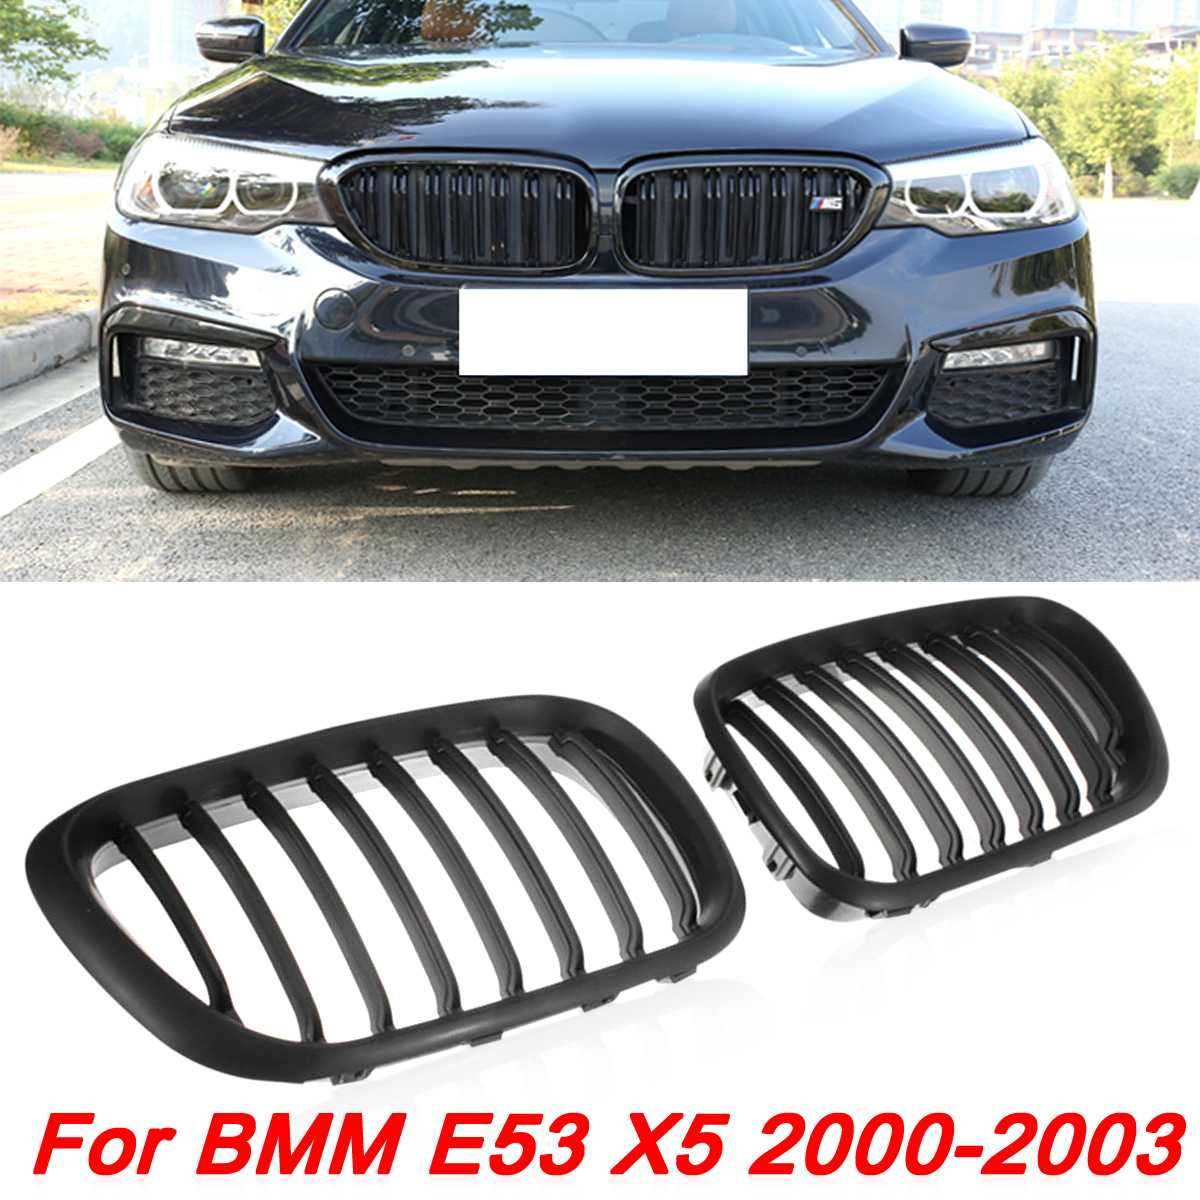 Car Black Front Center Grille Racing Grills For BMW X5 E53 1999 2000 2001 2002 2003 Replacement Grill Kidney Hood